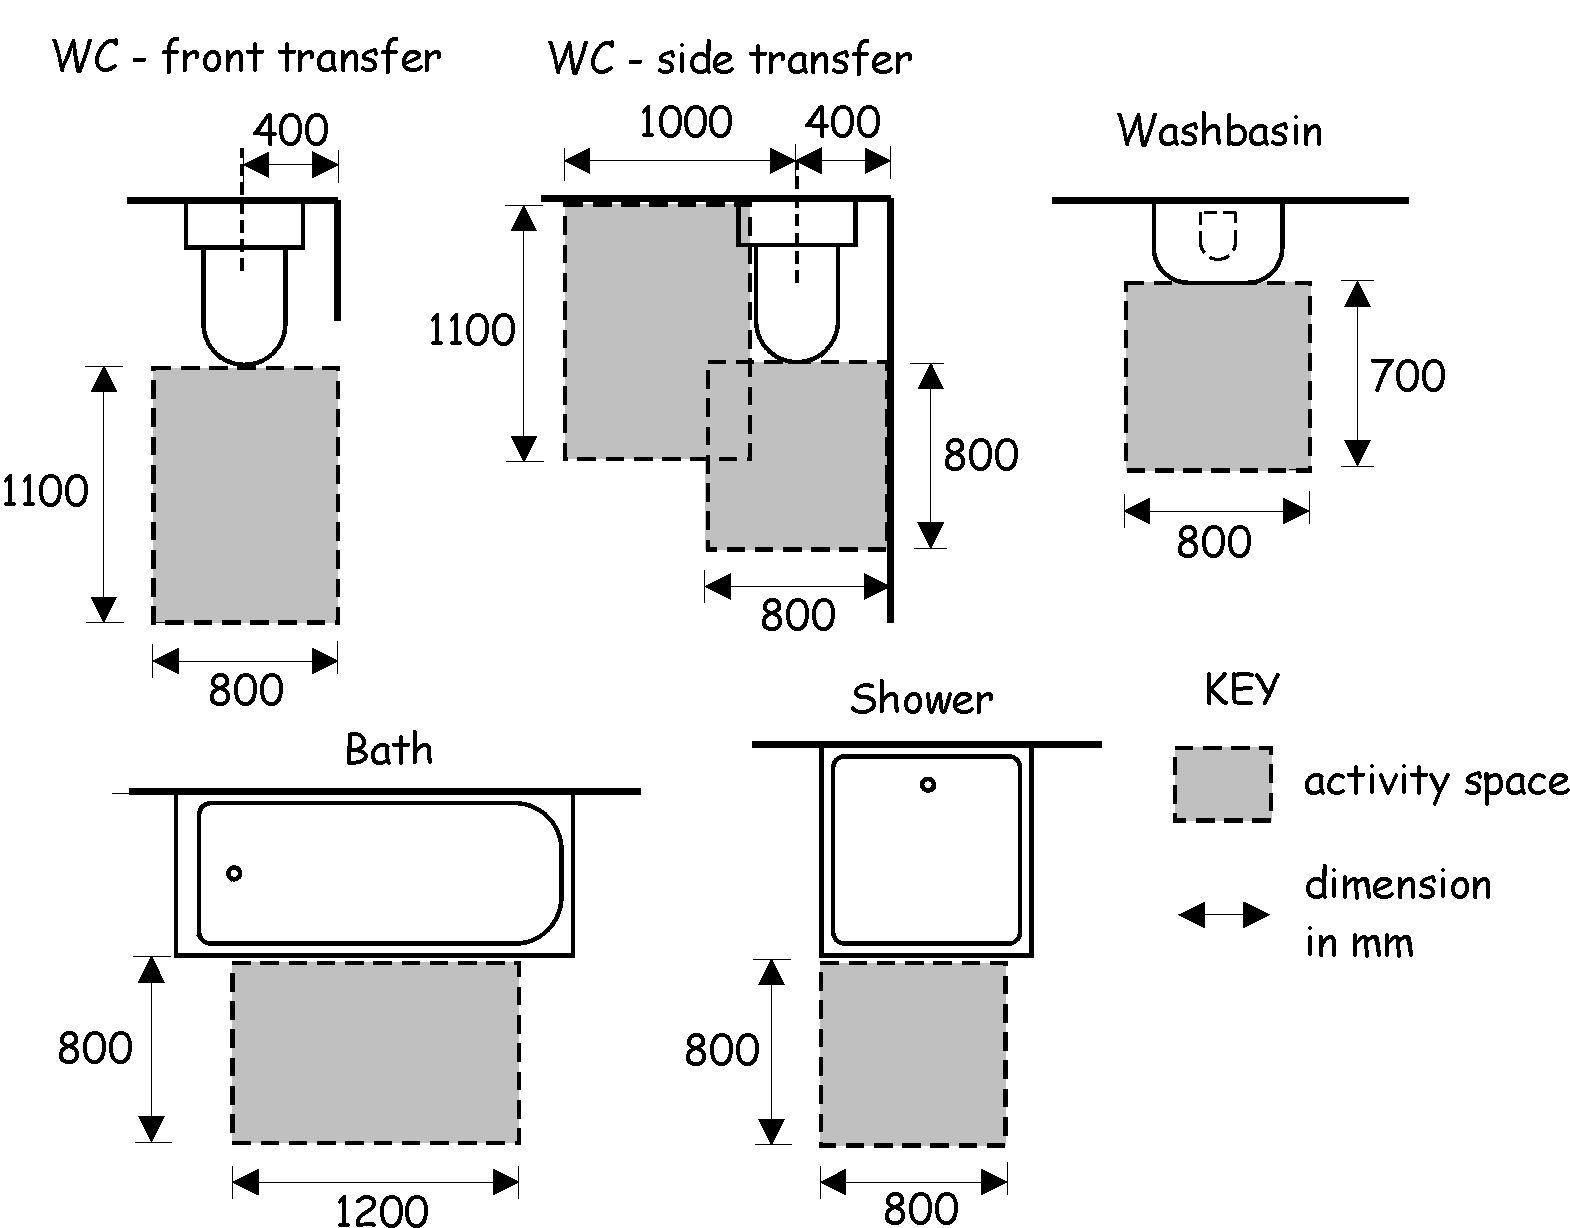 3 12 Sanitary Facilities In 2020 Bathroom Dimensions Simple